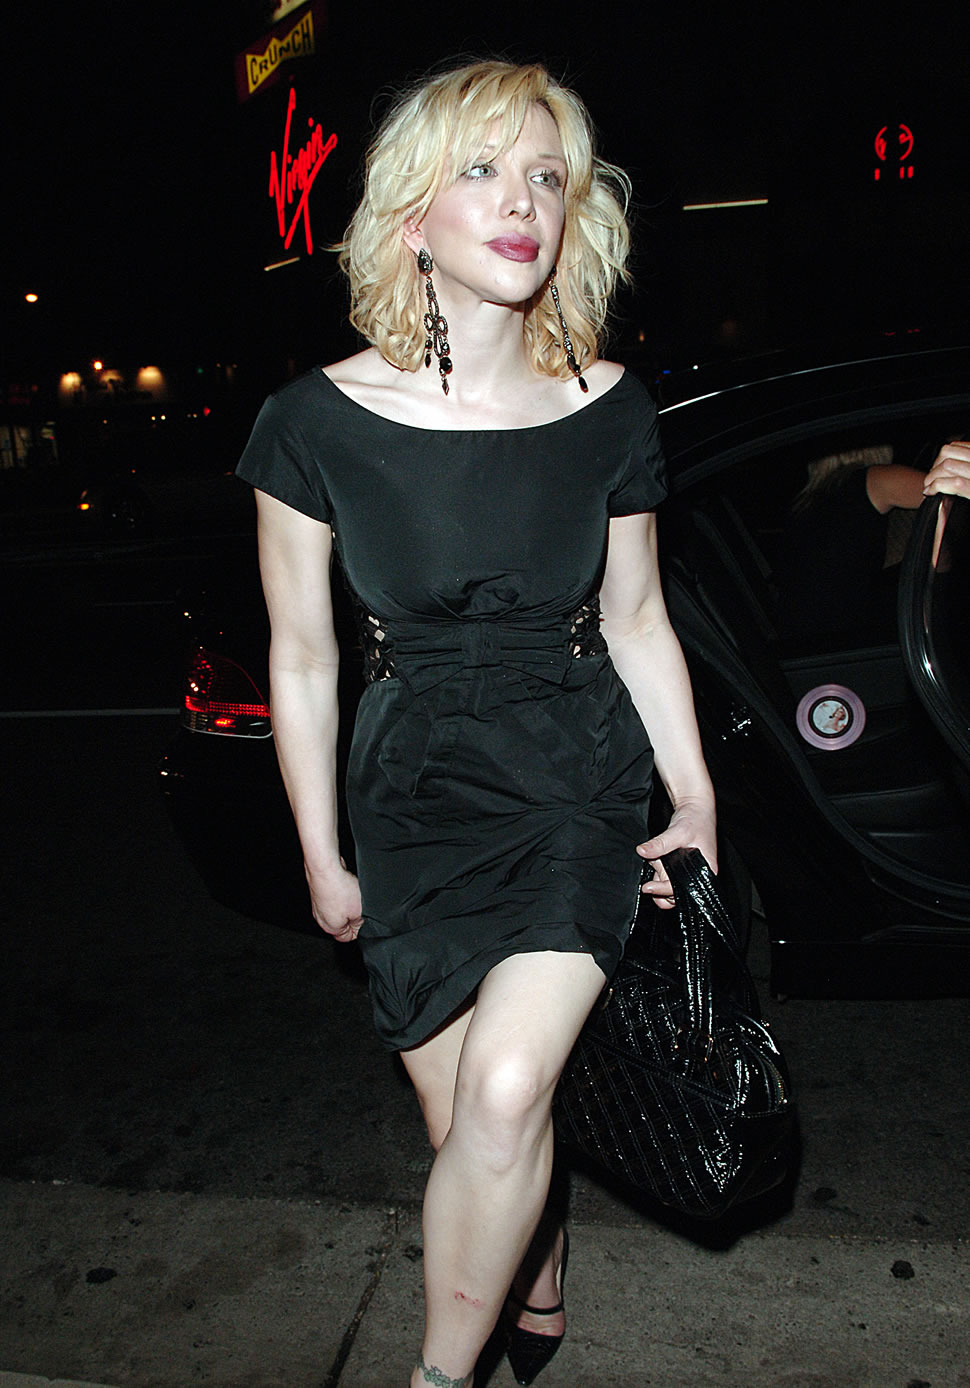 Courtney Love s bizarre style blog Music The Guardian 70